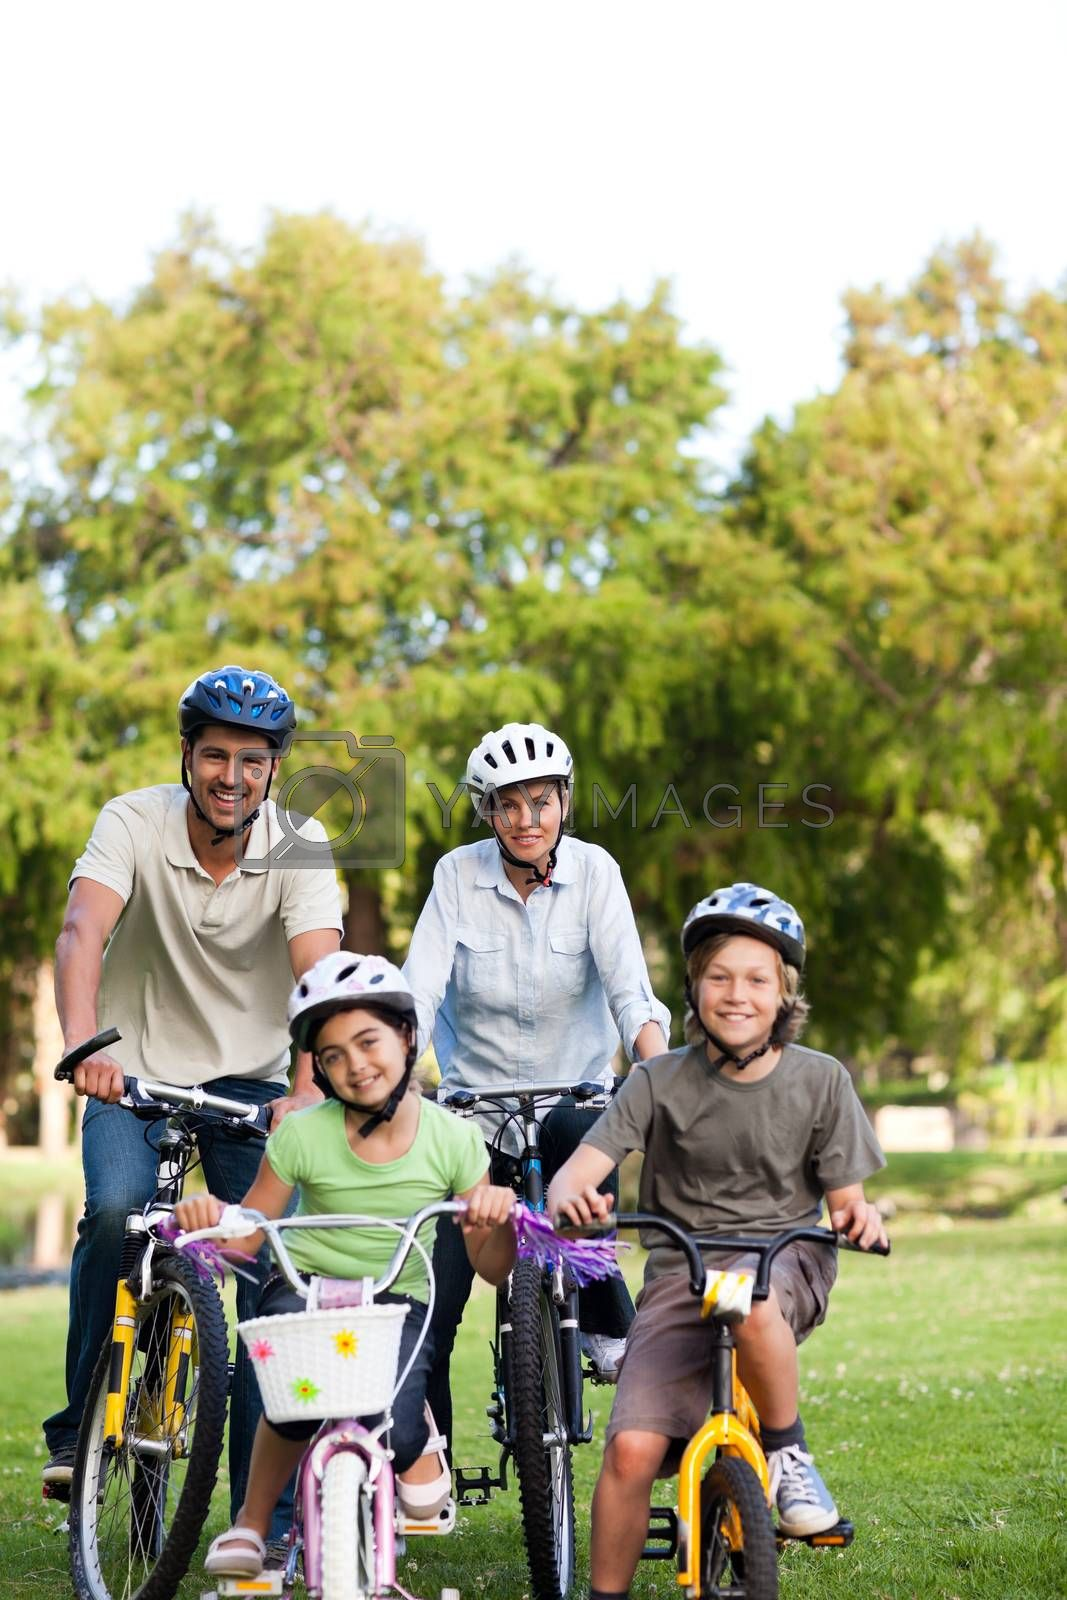 Family with their bikes during the summer in a park